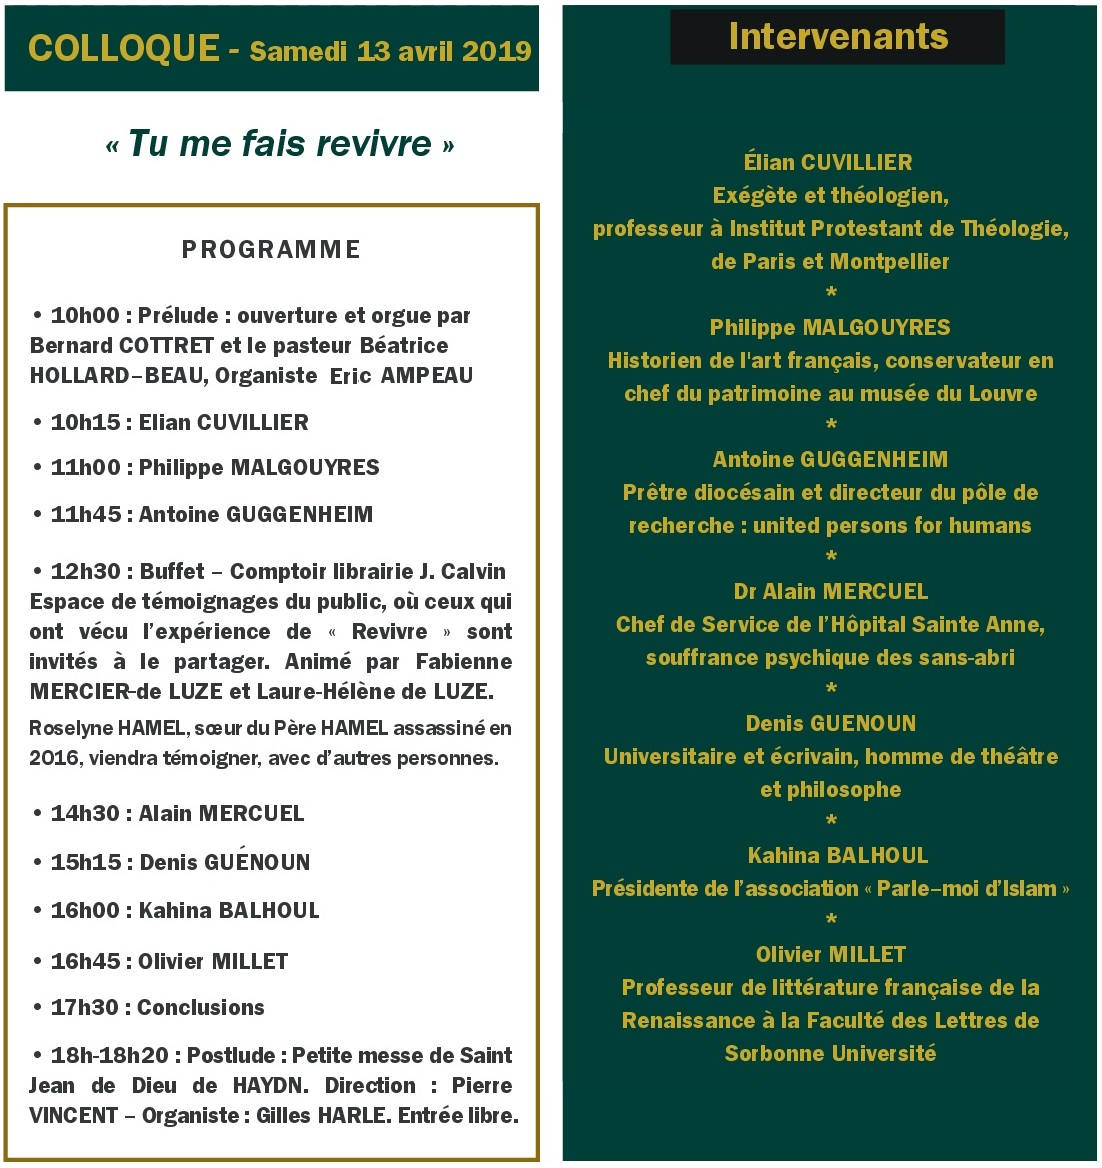 Colloque-Tu-me-fais-revivre-13-avril-2019-Billettes--A-r-002 (2)